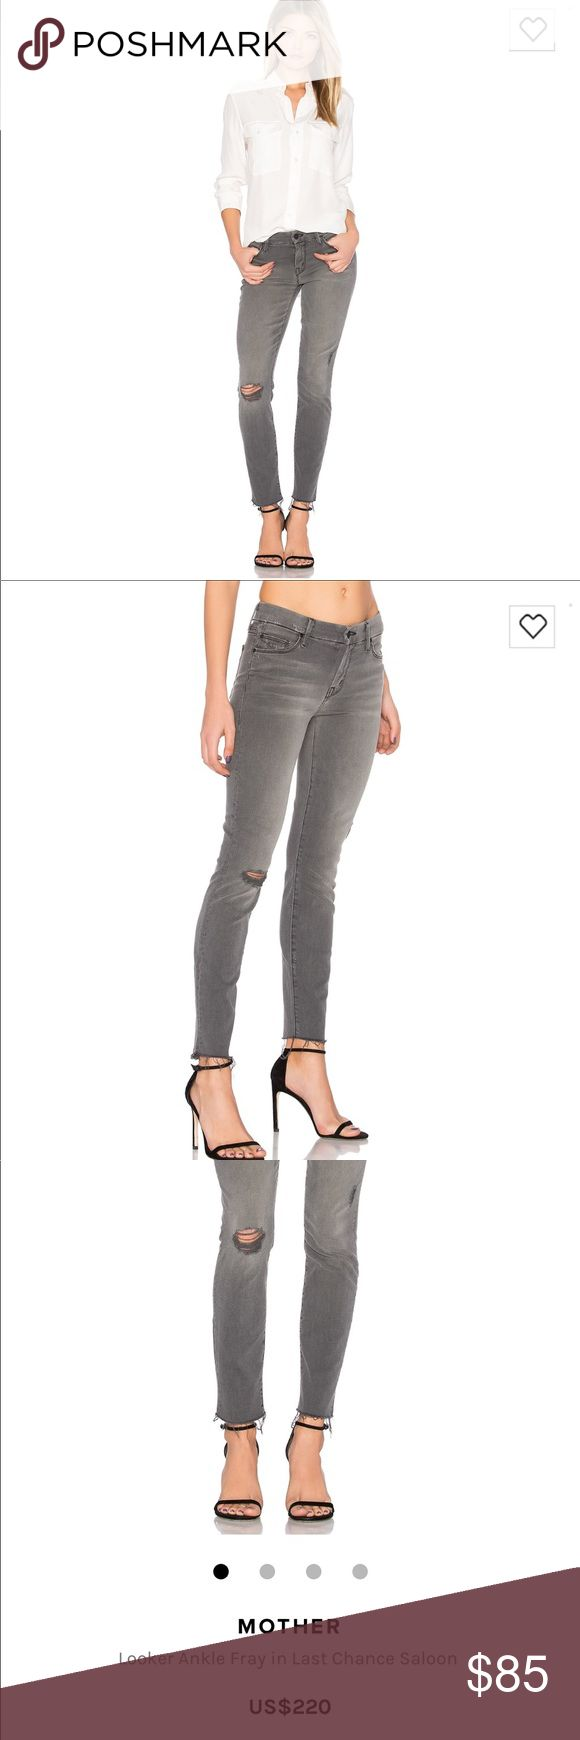 MOTHER  jean looker Ankle fray last chance saloon Mother jean Looker Ankle fray last chance saloon currently being sold in stores for 220$ distressed look grey denim grab these at a fraction of the cost 98% cotton 2% stretch MOTHER Jeans Skinny